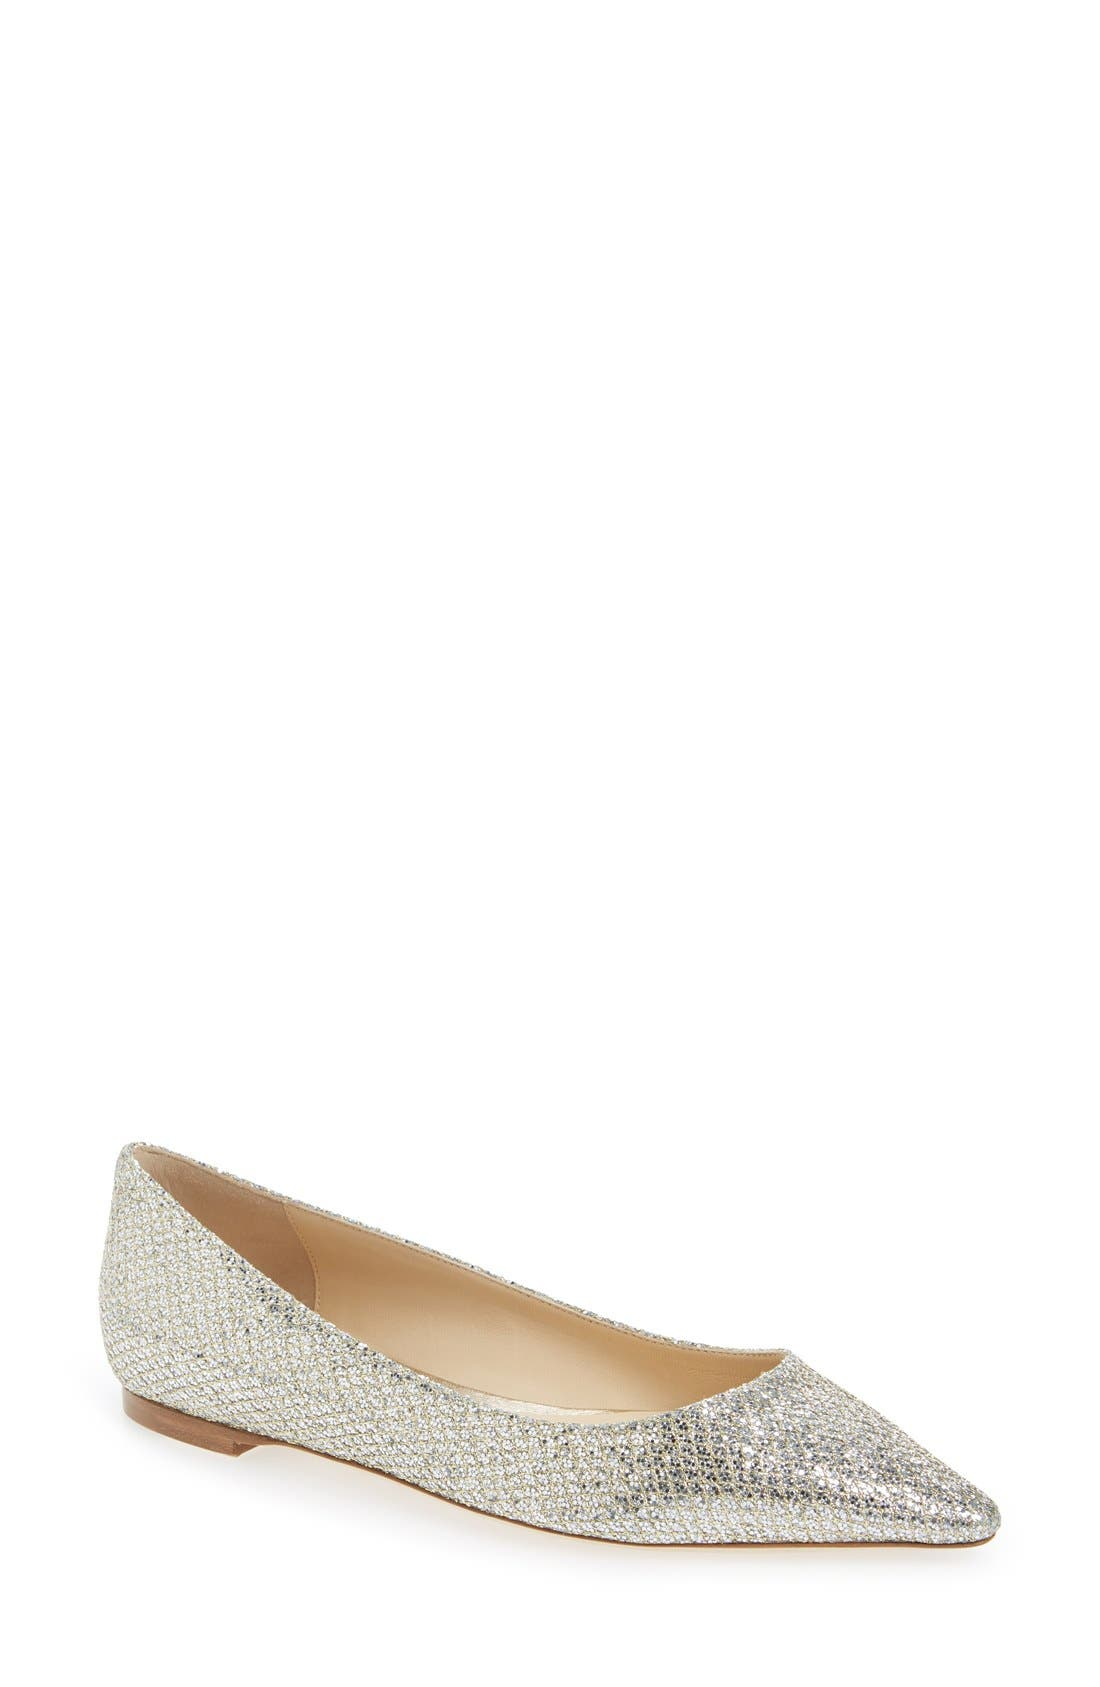 'Romy' Pointy Toe Flat,                         Main,                         color, Champagne